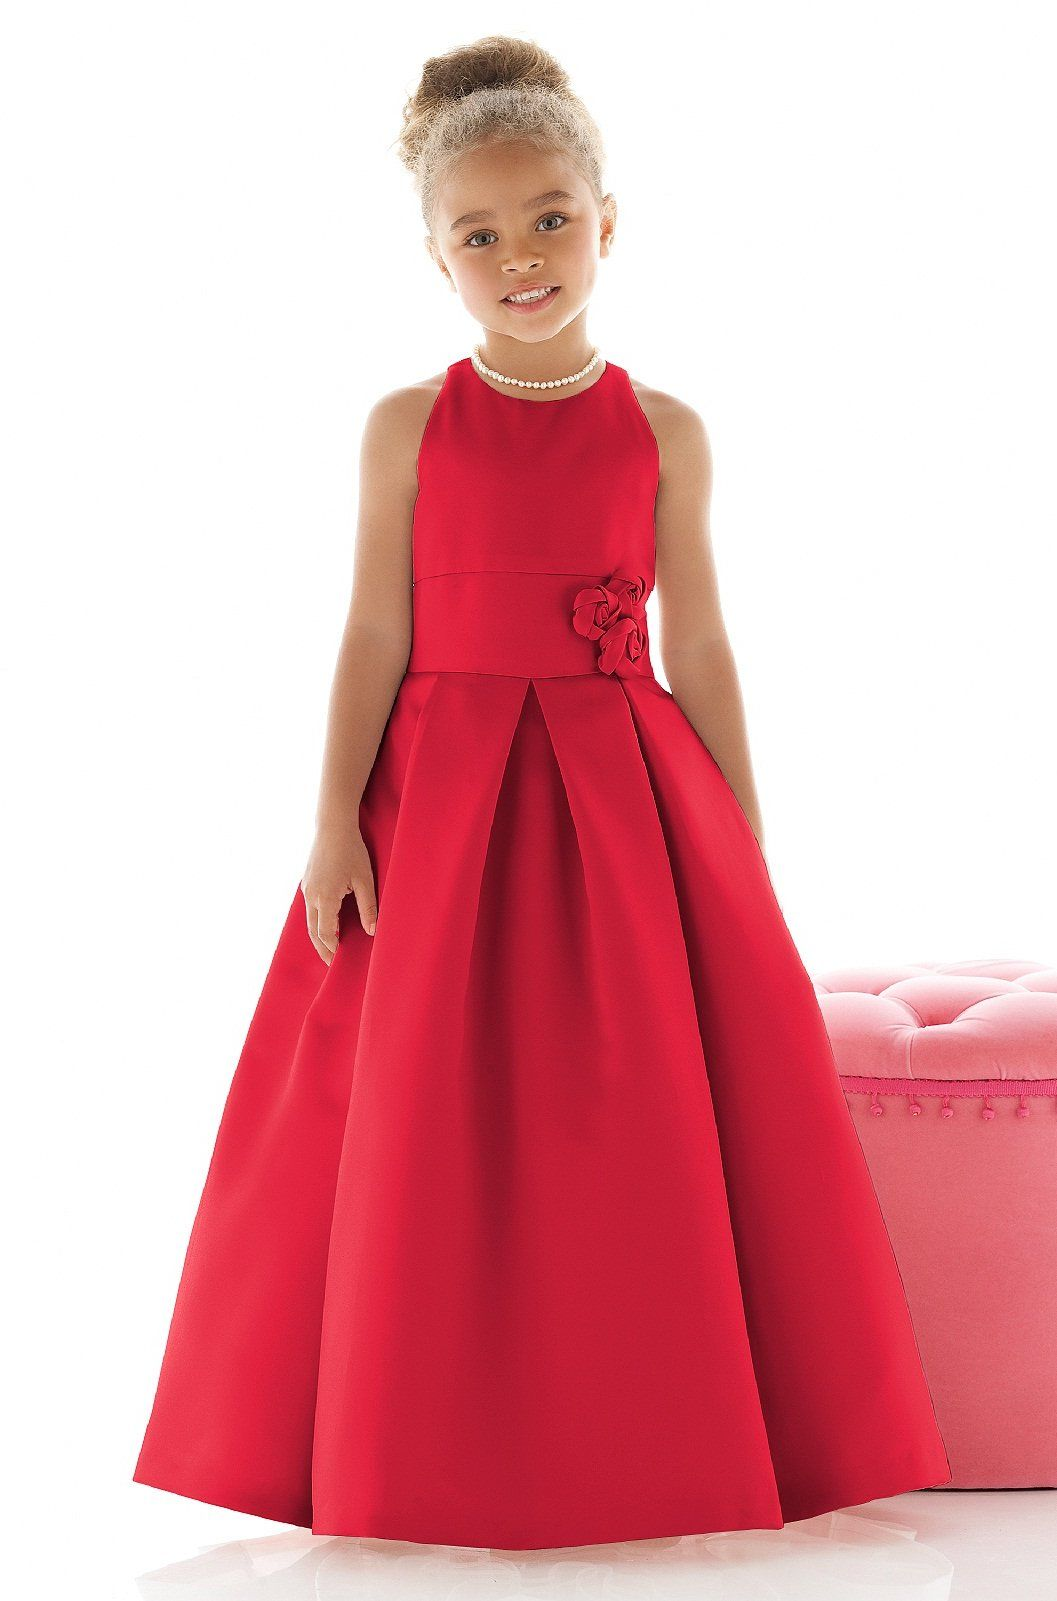 Flower girl dress wedding bridemaids flowergirls boys for Girls dresses for a wedding